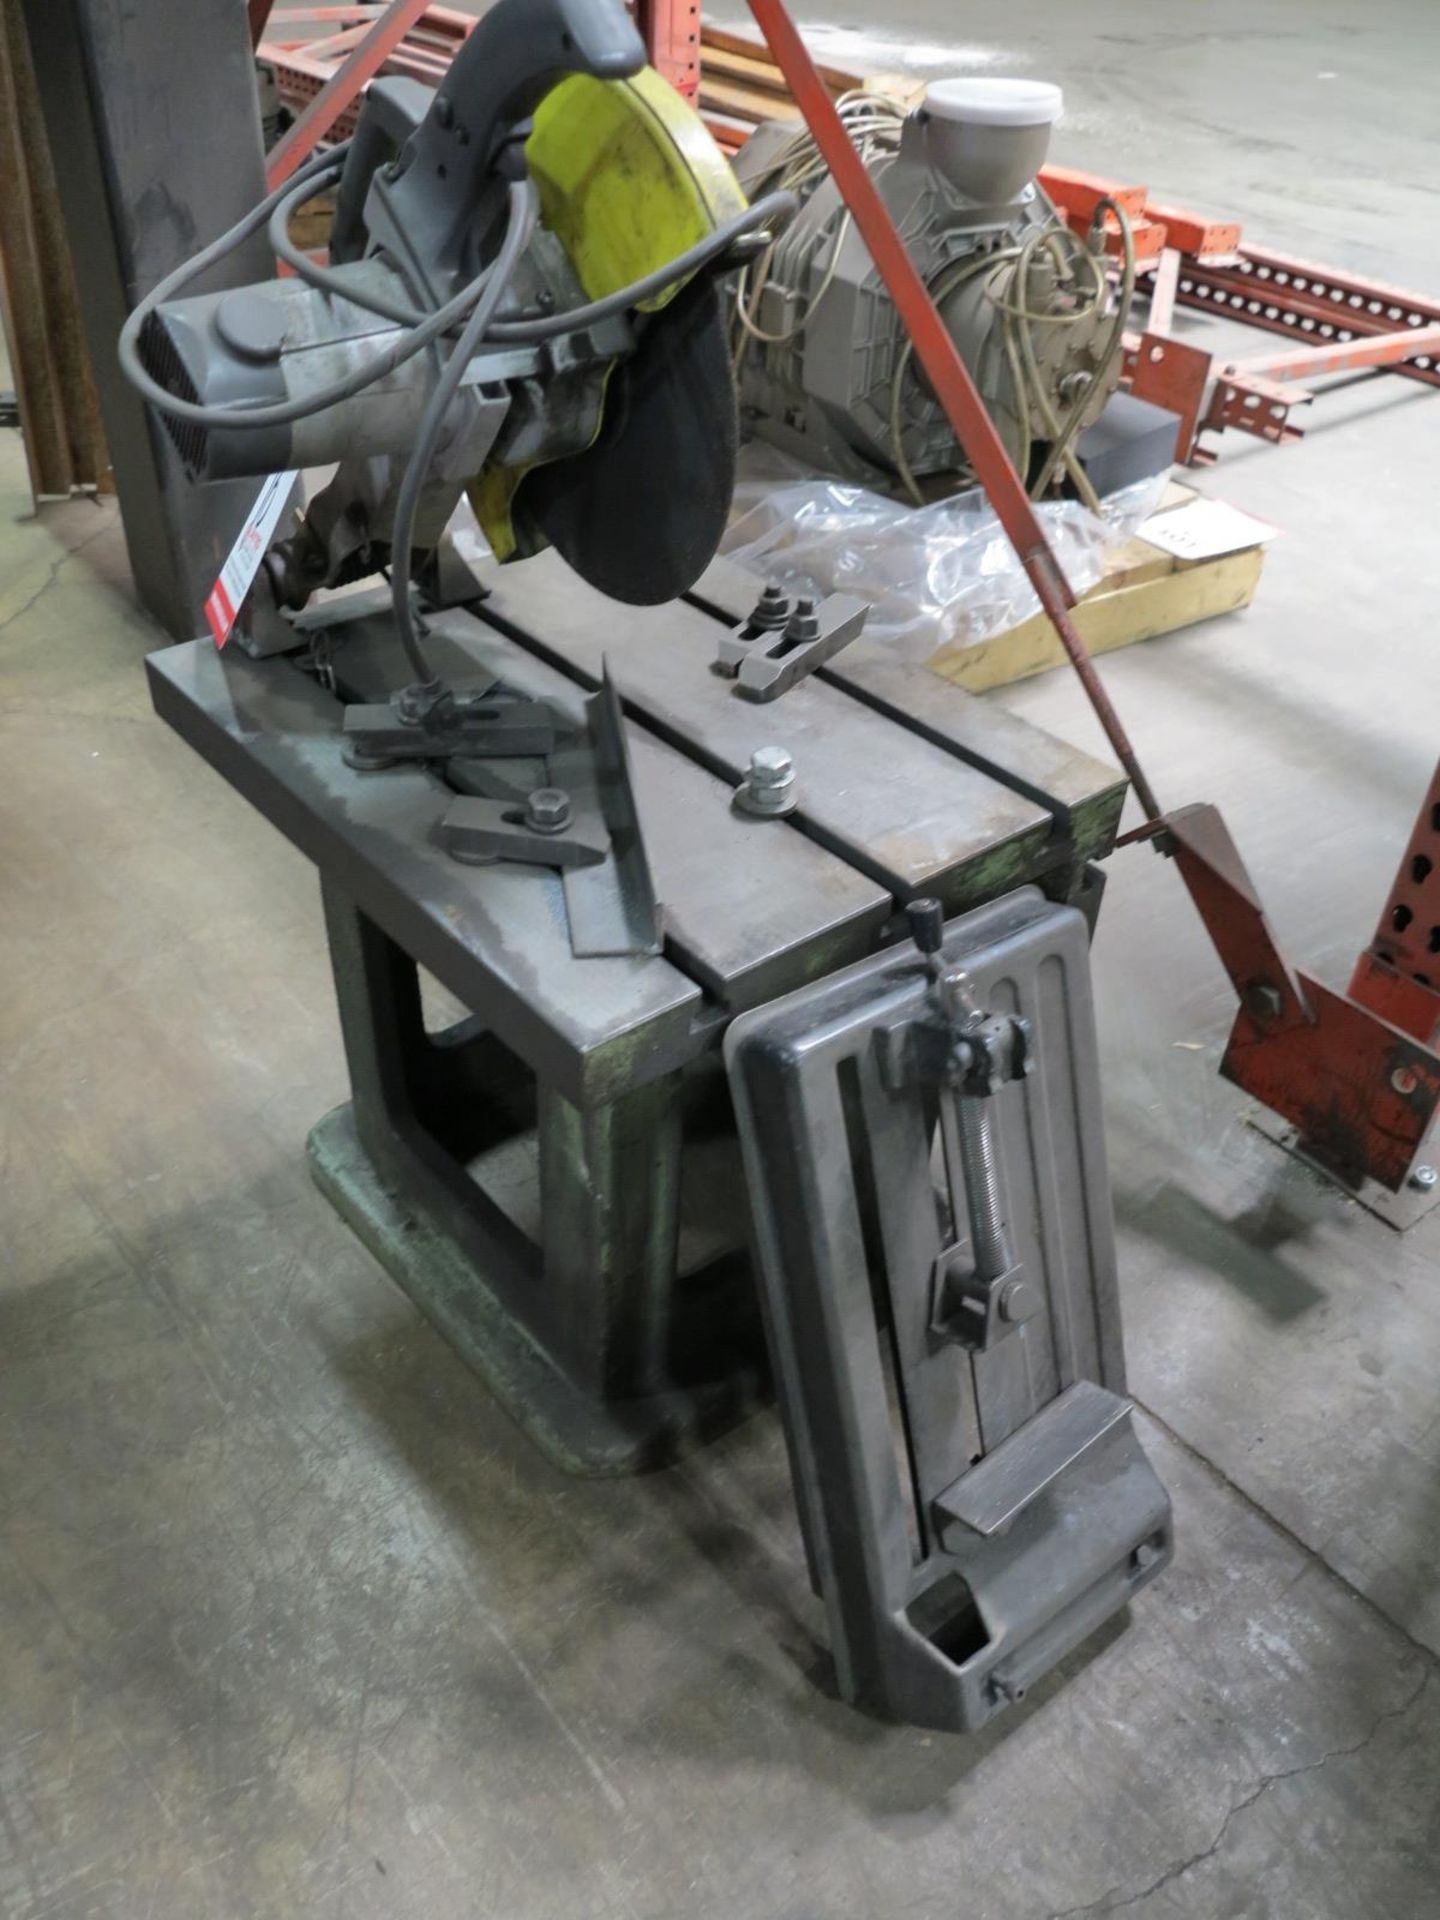 """Lot 16 - JEPSON 14"""" CUT OFF SAW, MODEL 9115, W/ T-SLOTTED TABLE"""